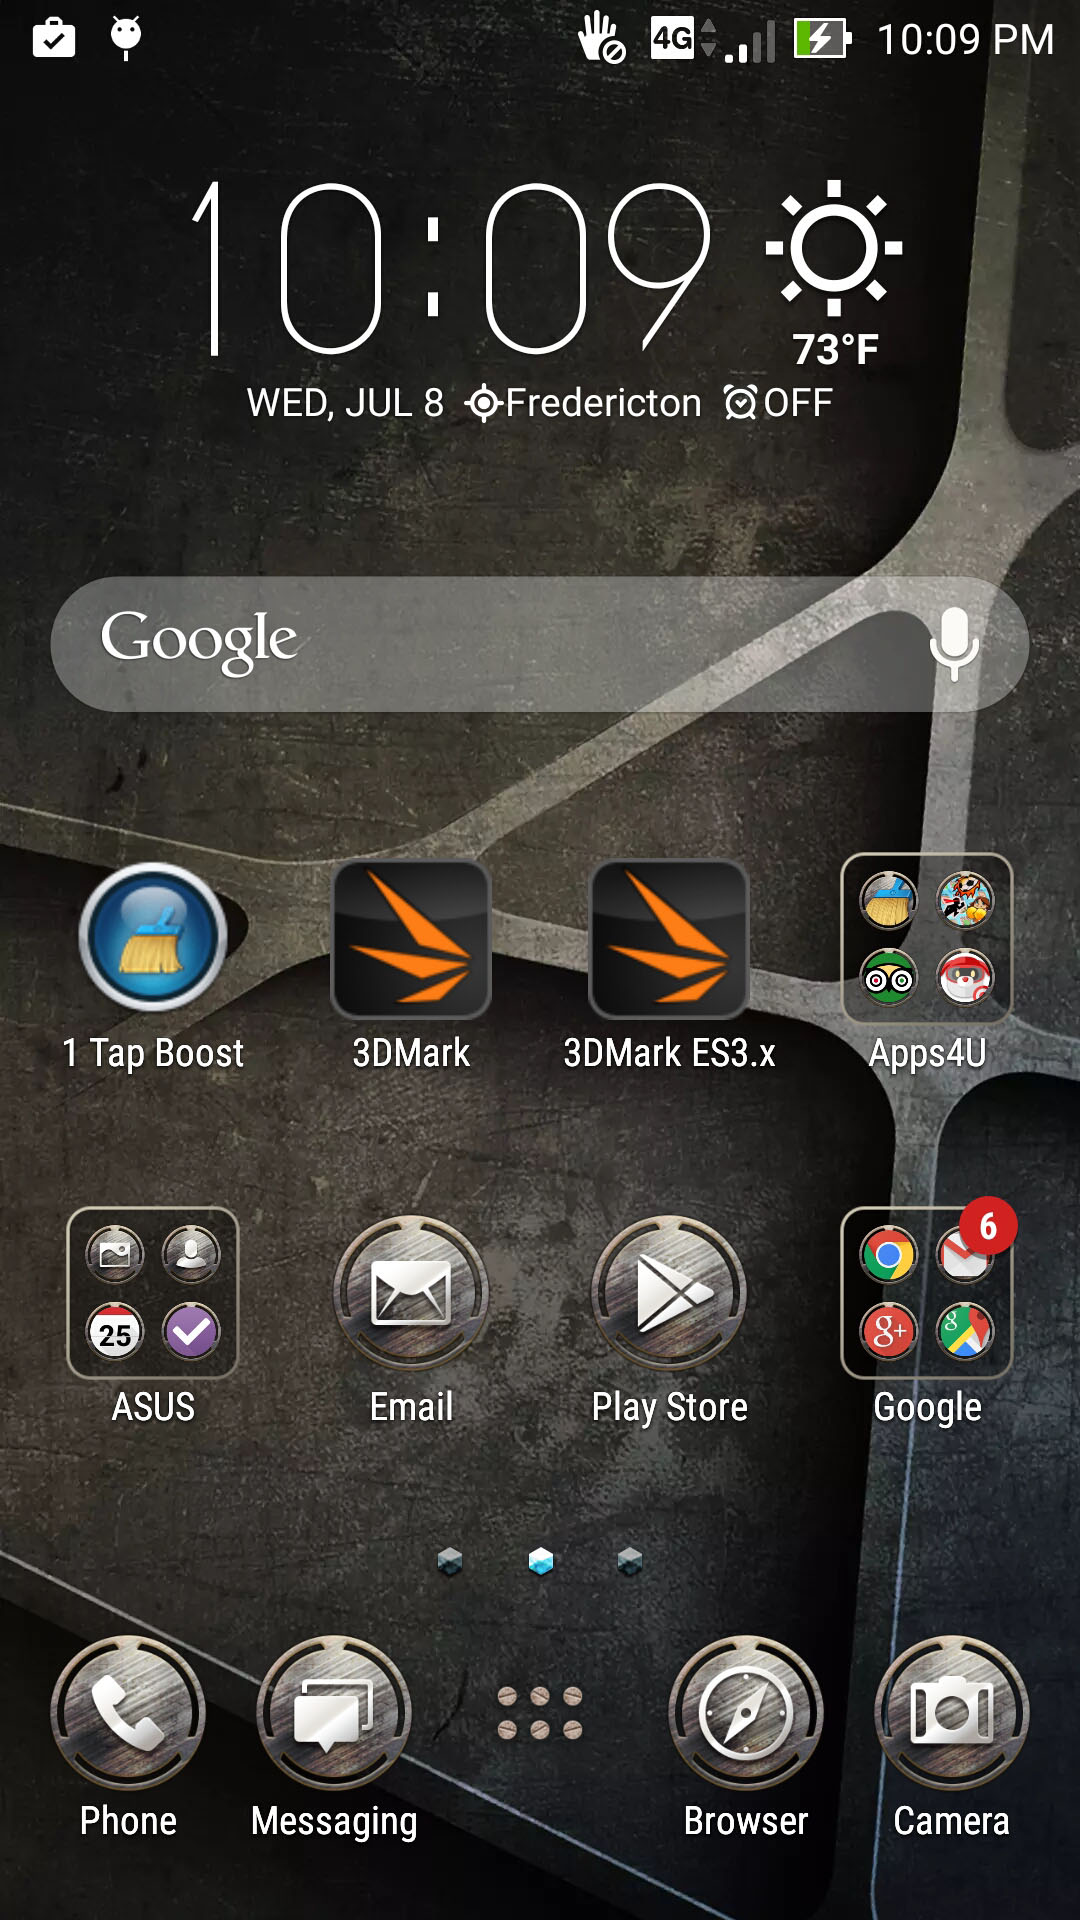 ASUS ZenFone 2 – Dark Alternative Theme – Techgage